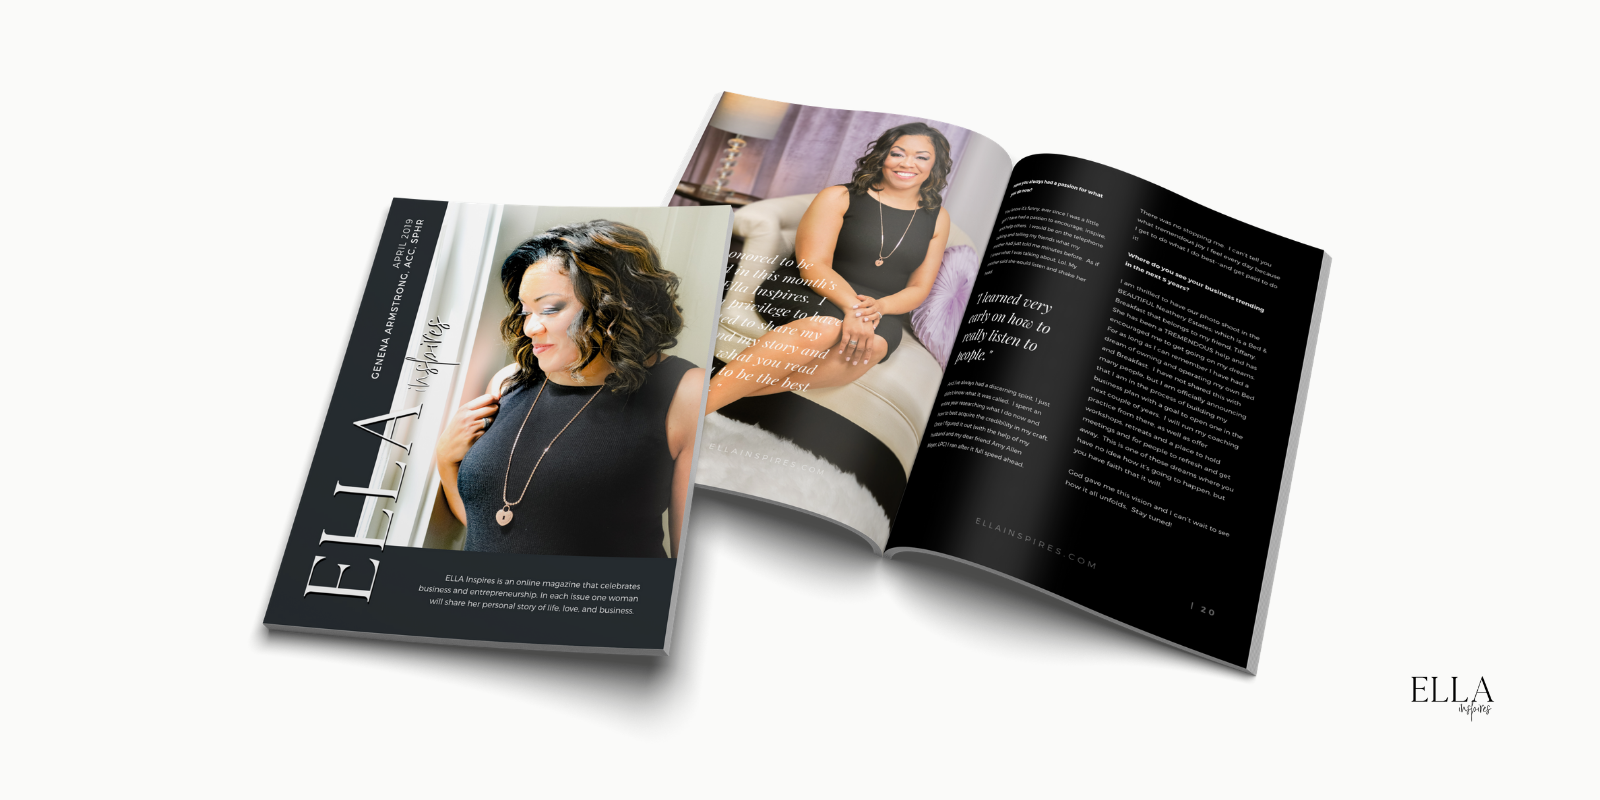 GET IT IN PRINT! - Click here to Subscribe to ELLA Inspires or,